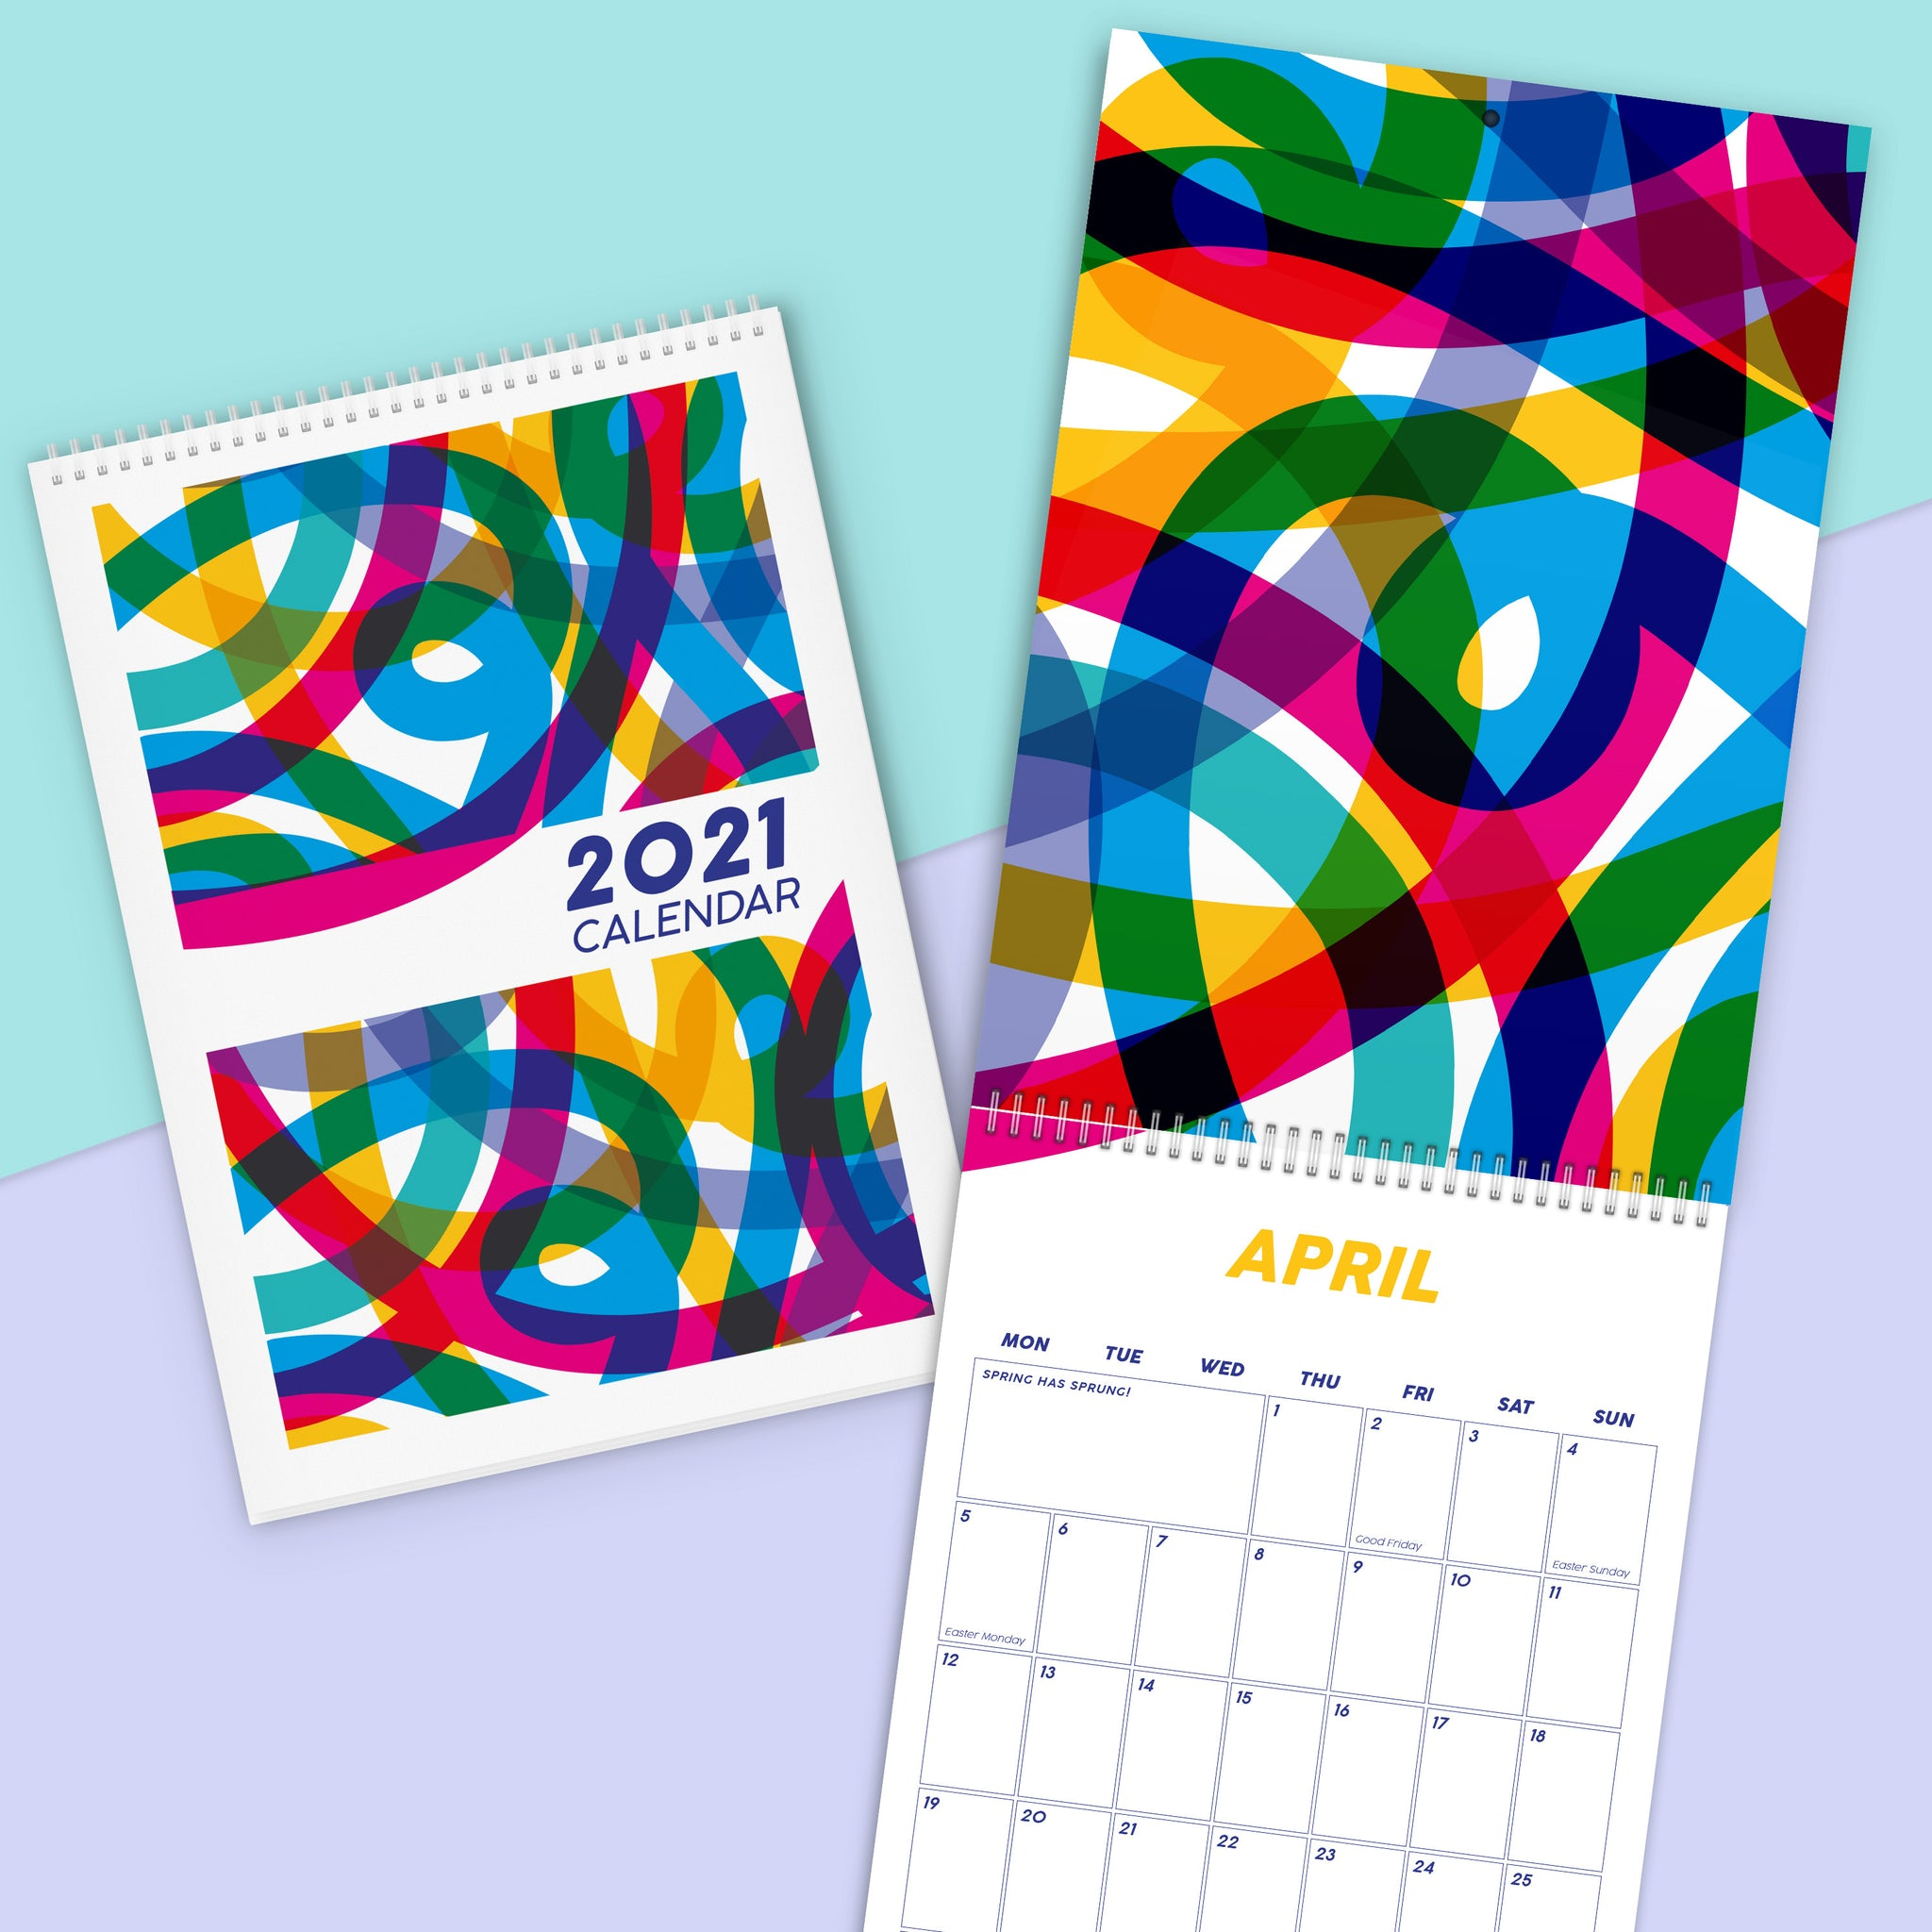 2021 Colourful Calendar | Vibrant & Geometric Family Home Office Planner Active